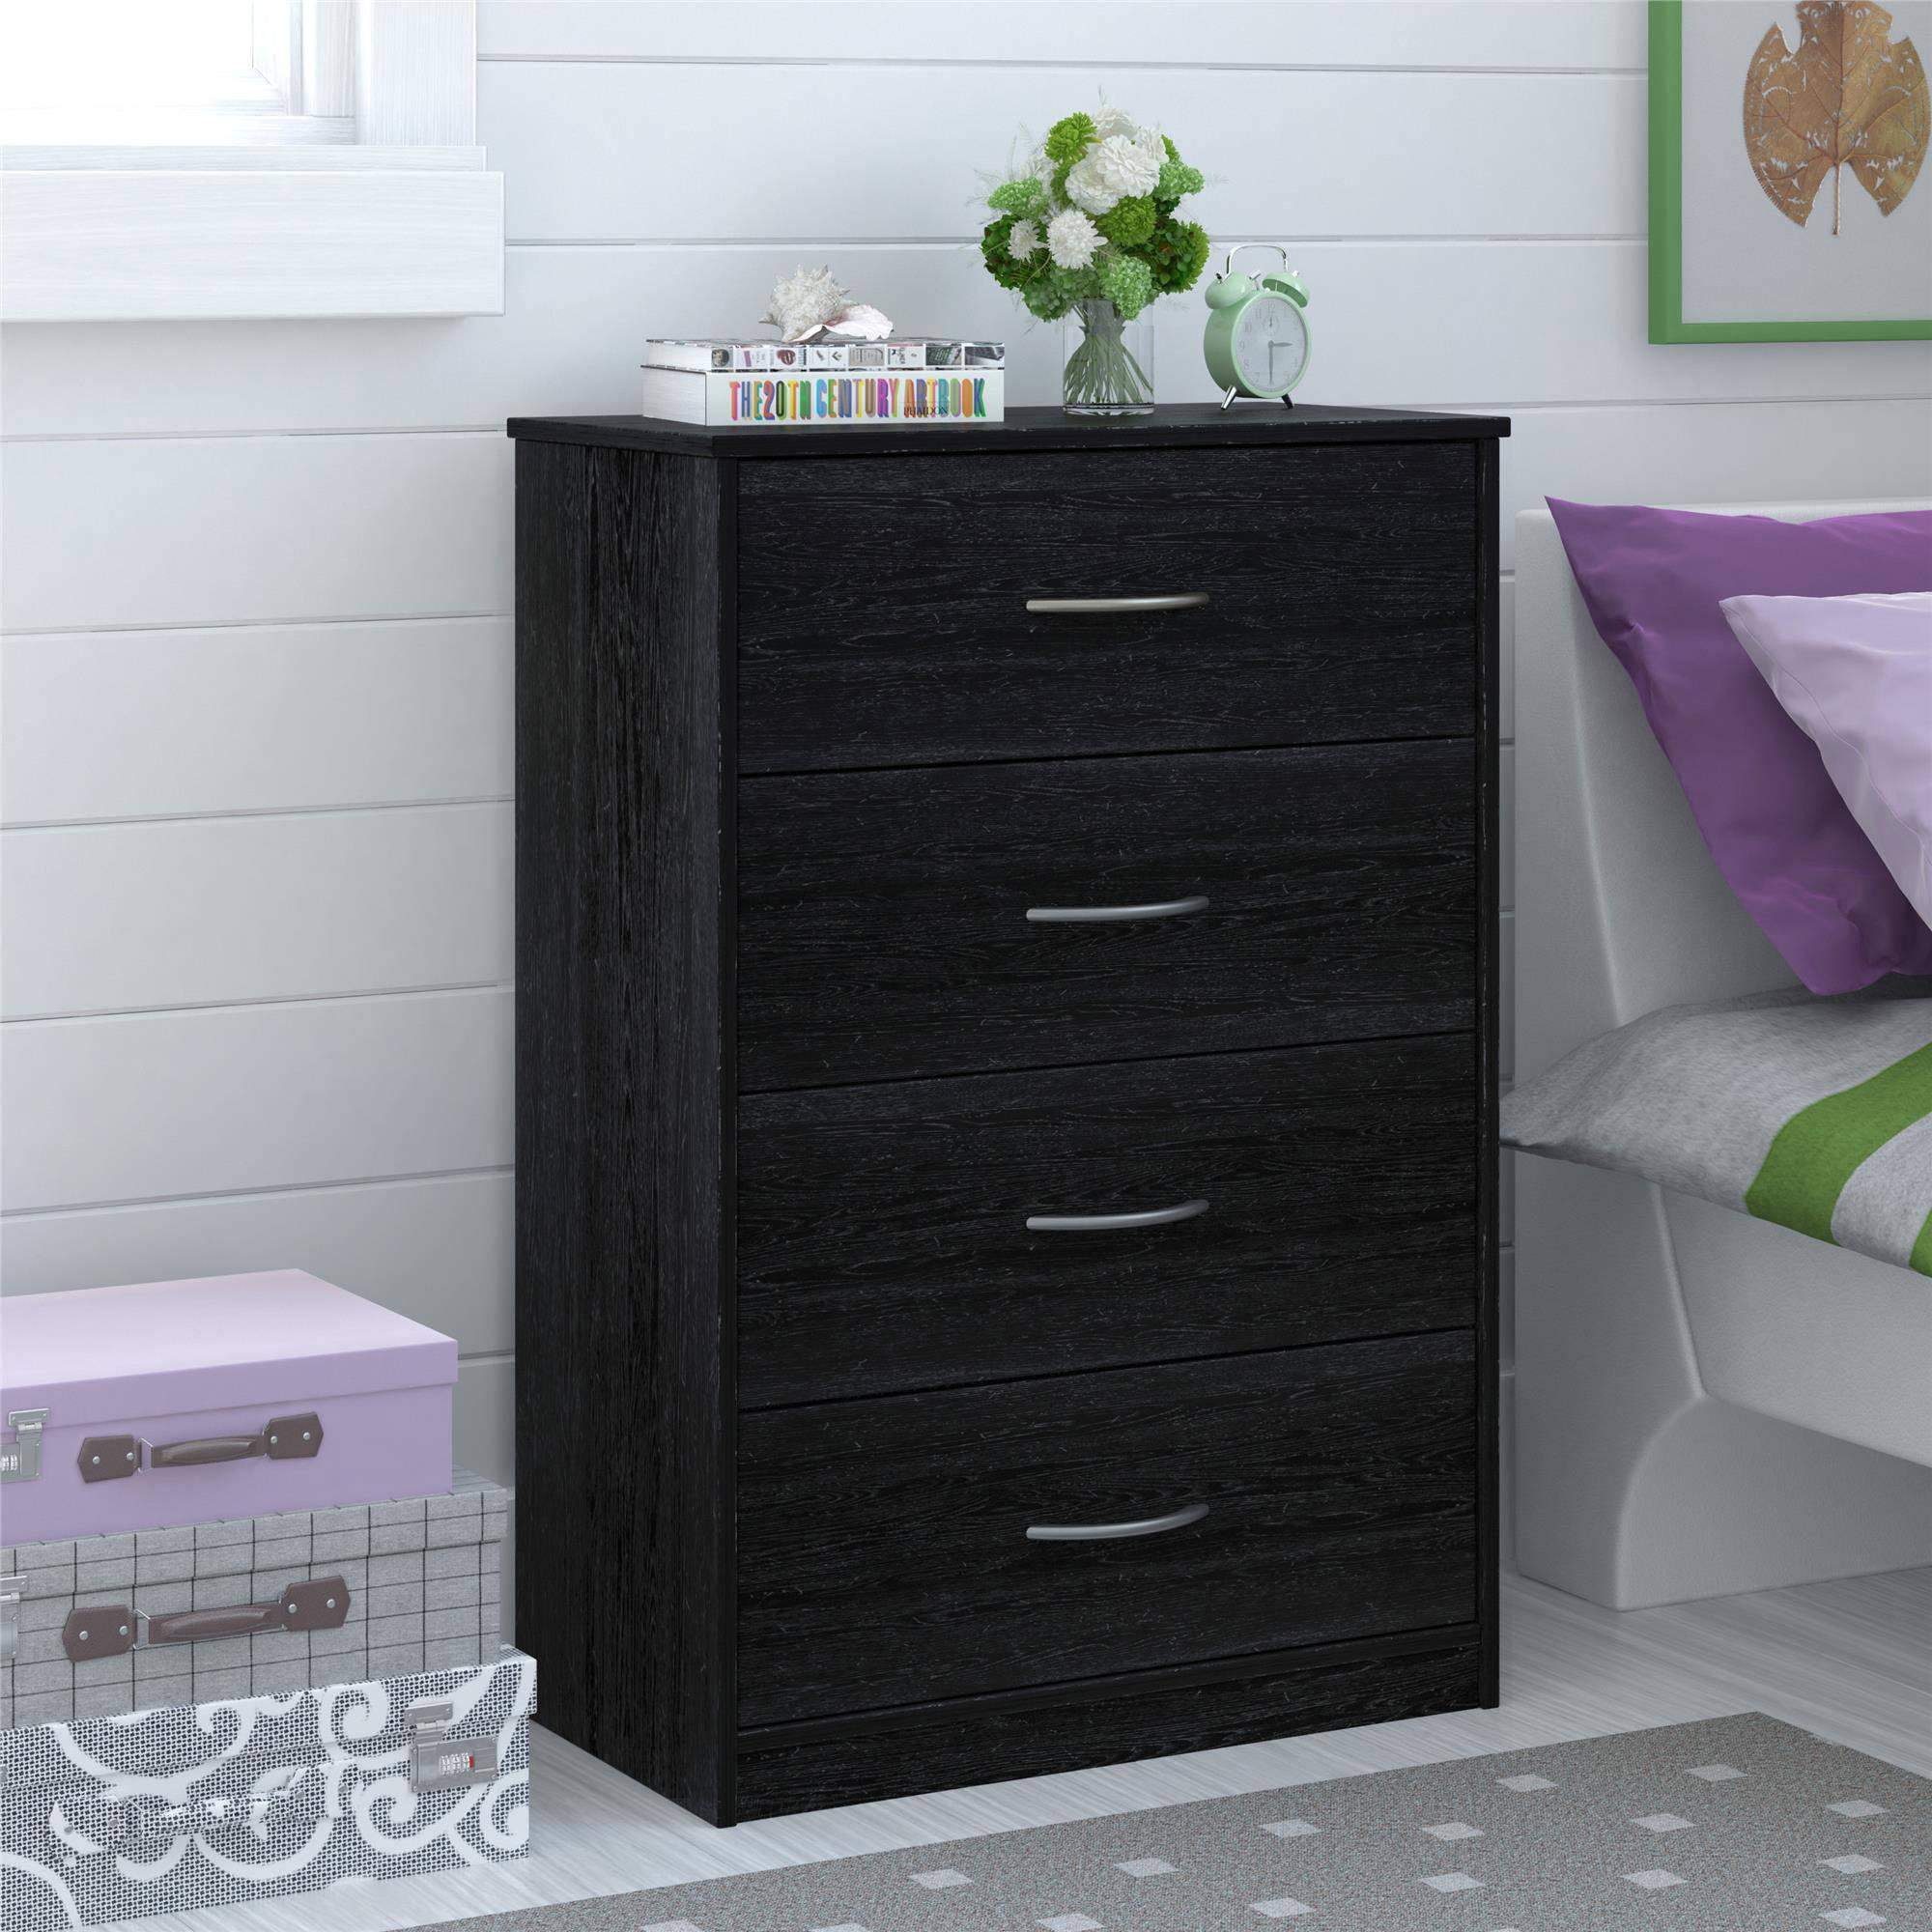 Mainstays Bedroom Storage Dresser Chest 4 Drawer Modern